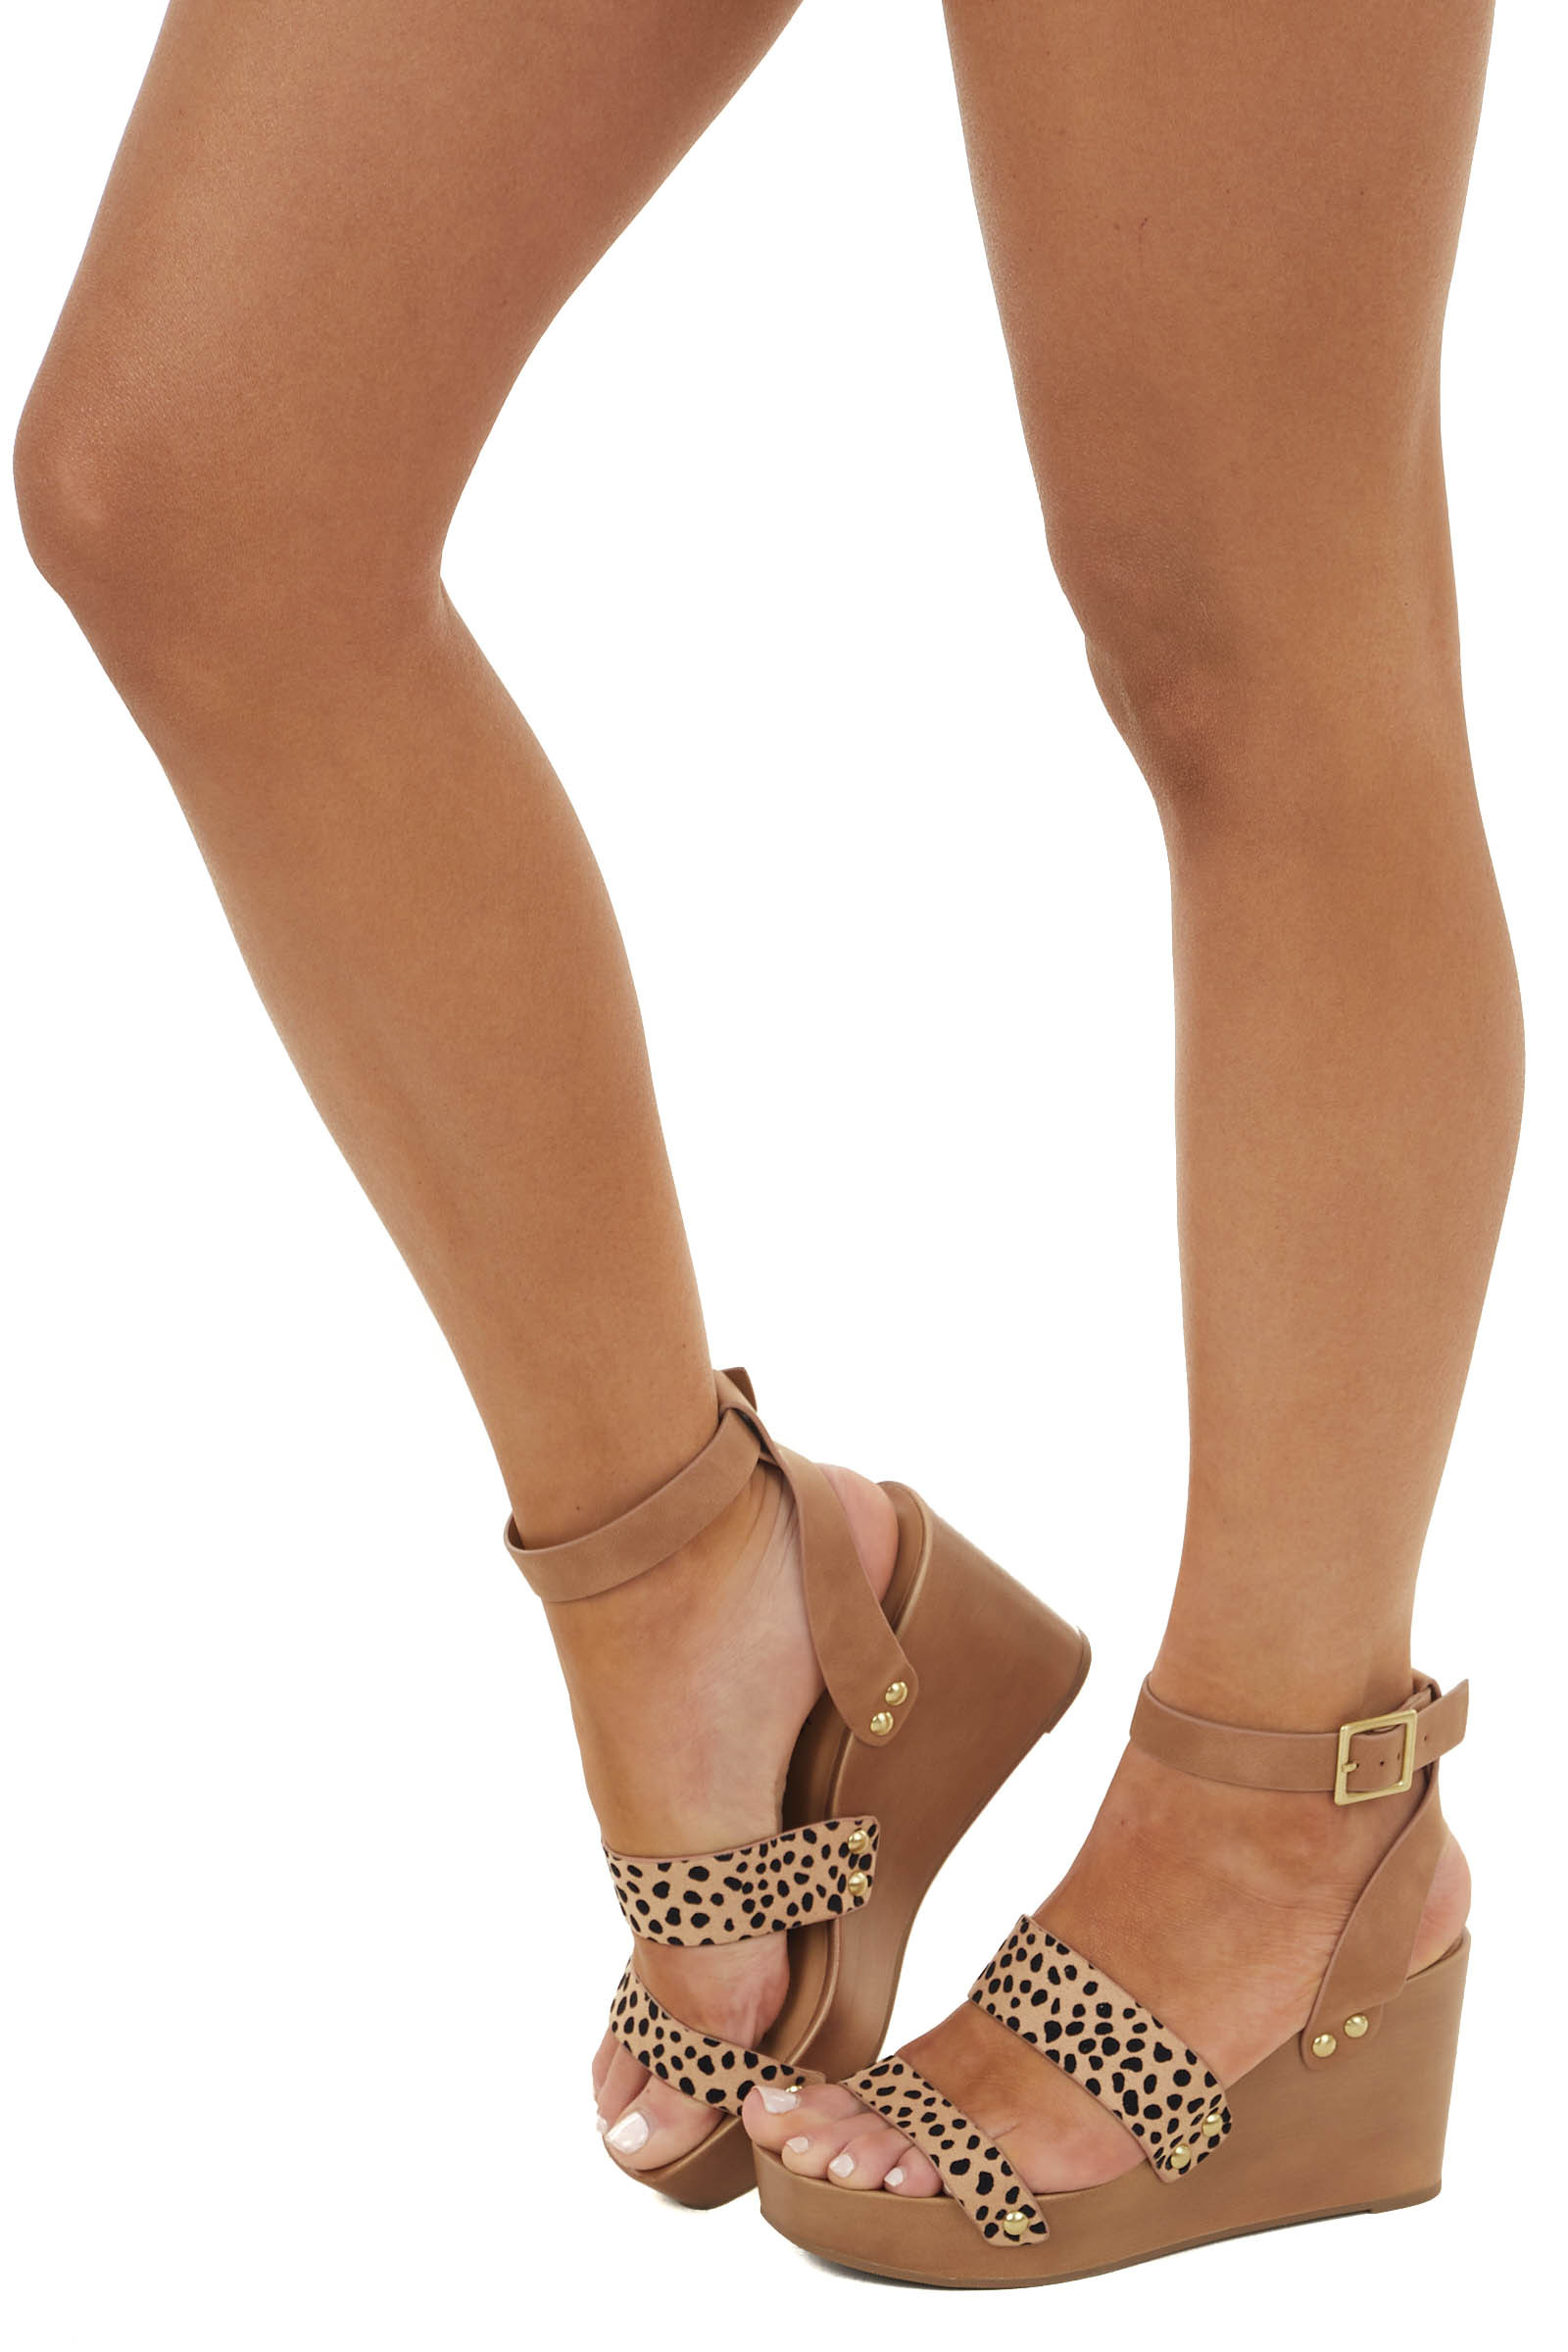 Cheetah Print Strappy Wedge Sandal with Adjustable Buckle